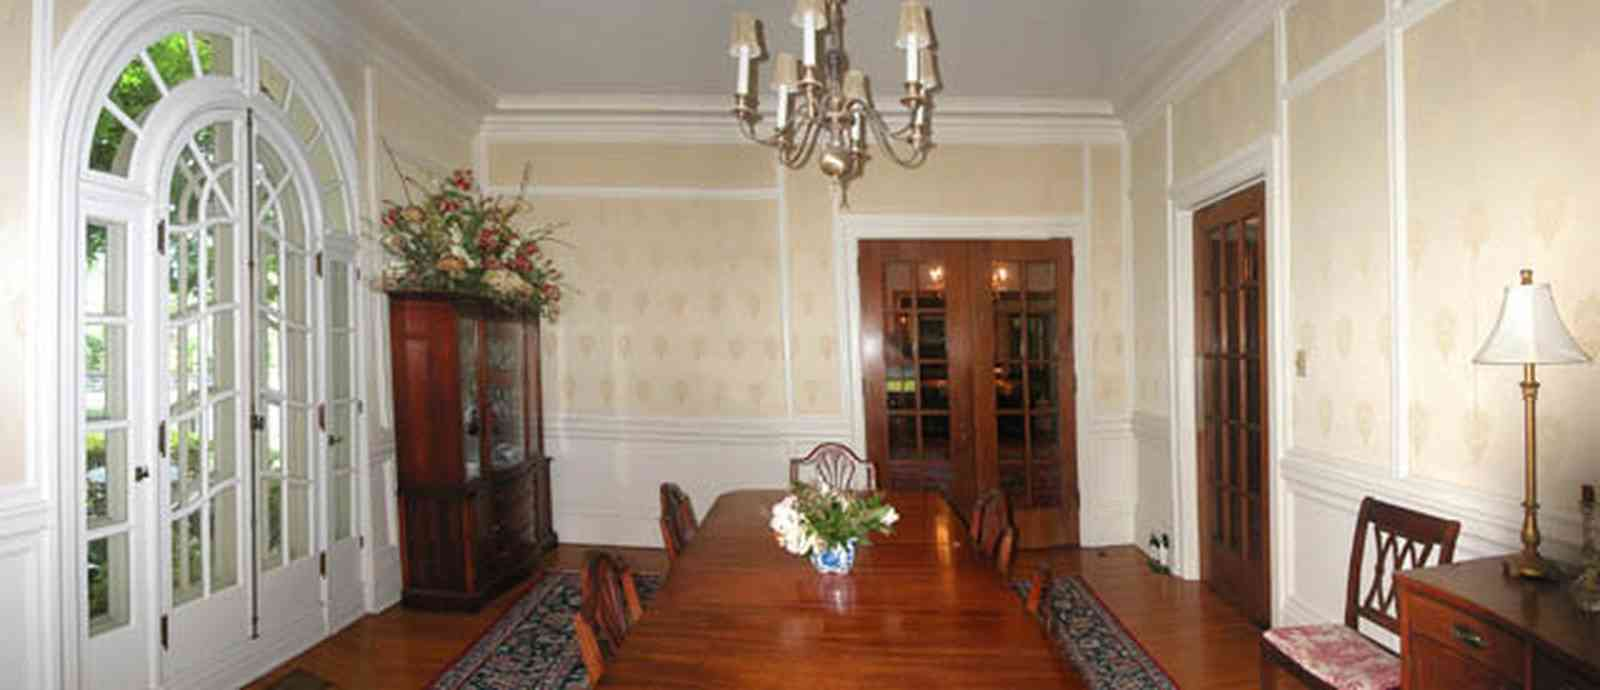 North-Hill:-105-West-Gonzales-Street_33b.jpg:  dining room, duncan phyfe furniture, chandelier, french doors,